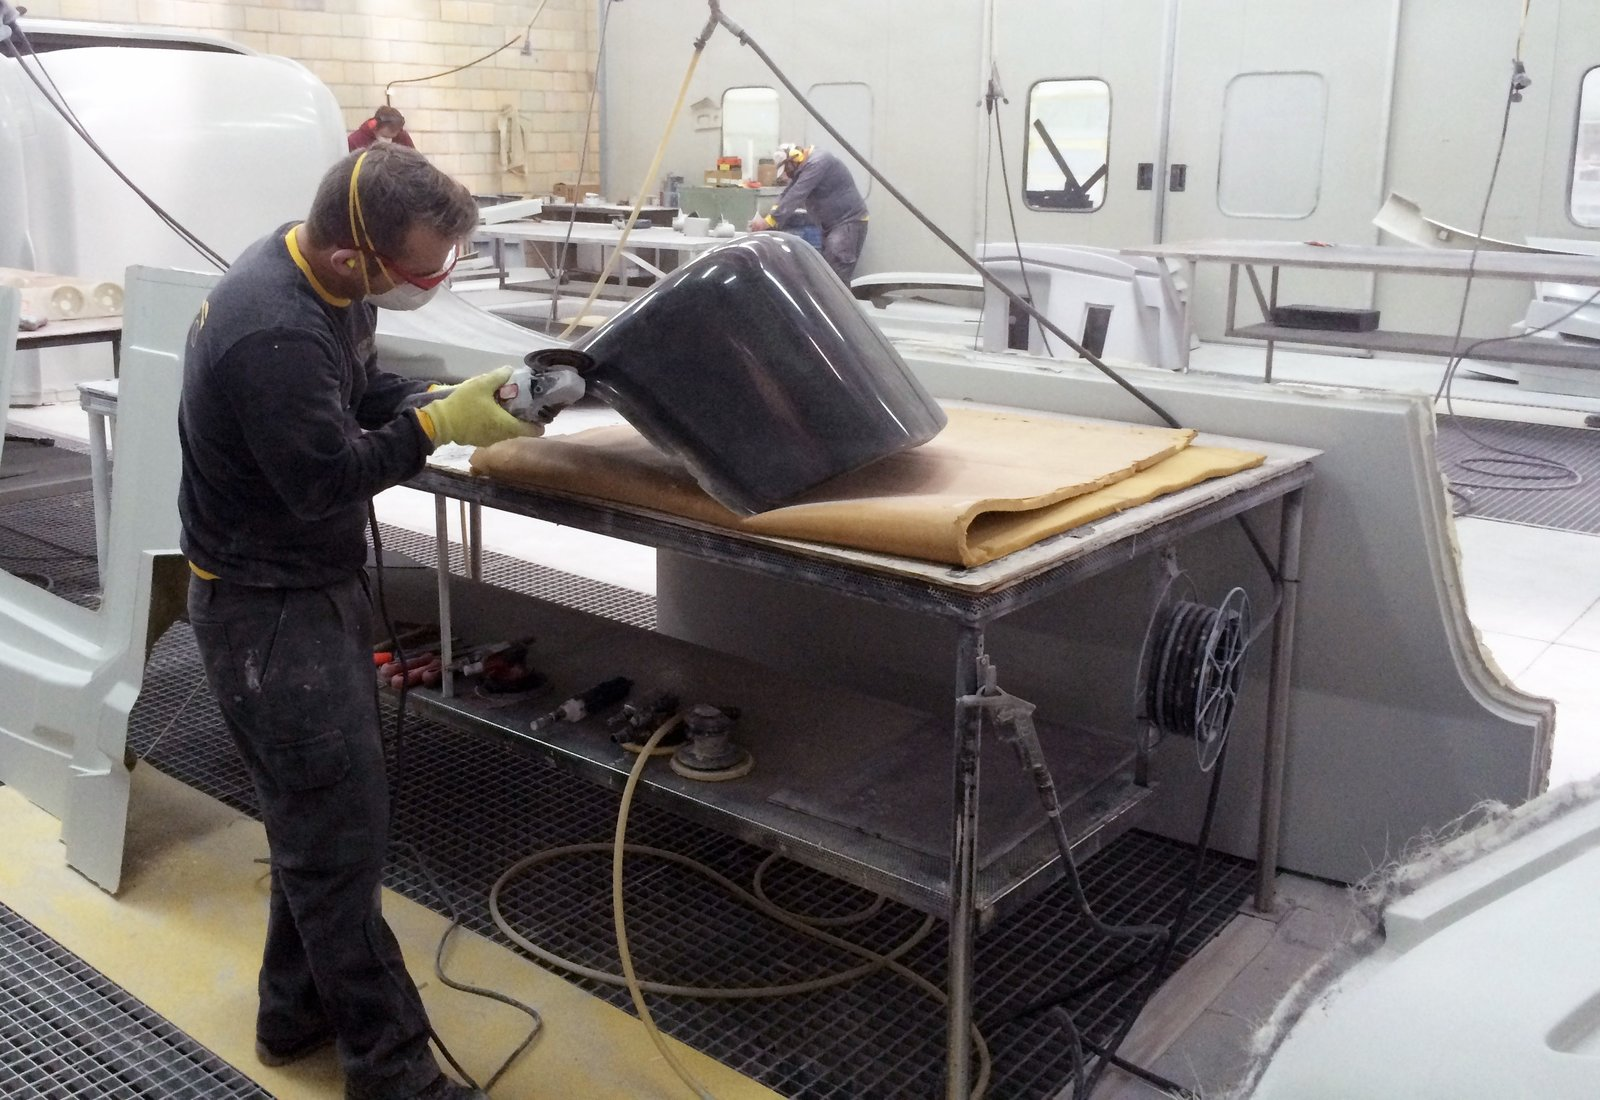 The pieces are designed in Italy and manufactured in Portugal, where De La Espada's workshop is known for their high-quality woodworking skills. Shown here is a craftsman at work, carefully sanding the fiberglass shells that are fabricated through multiple steps—from forming a mold to the final piecing together.  Photo 7 of 8 in Bringing Back a Forgotten Material